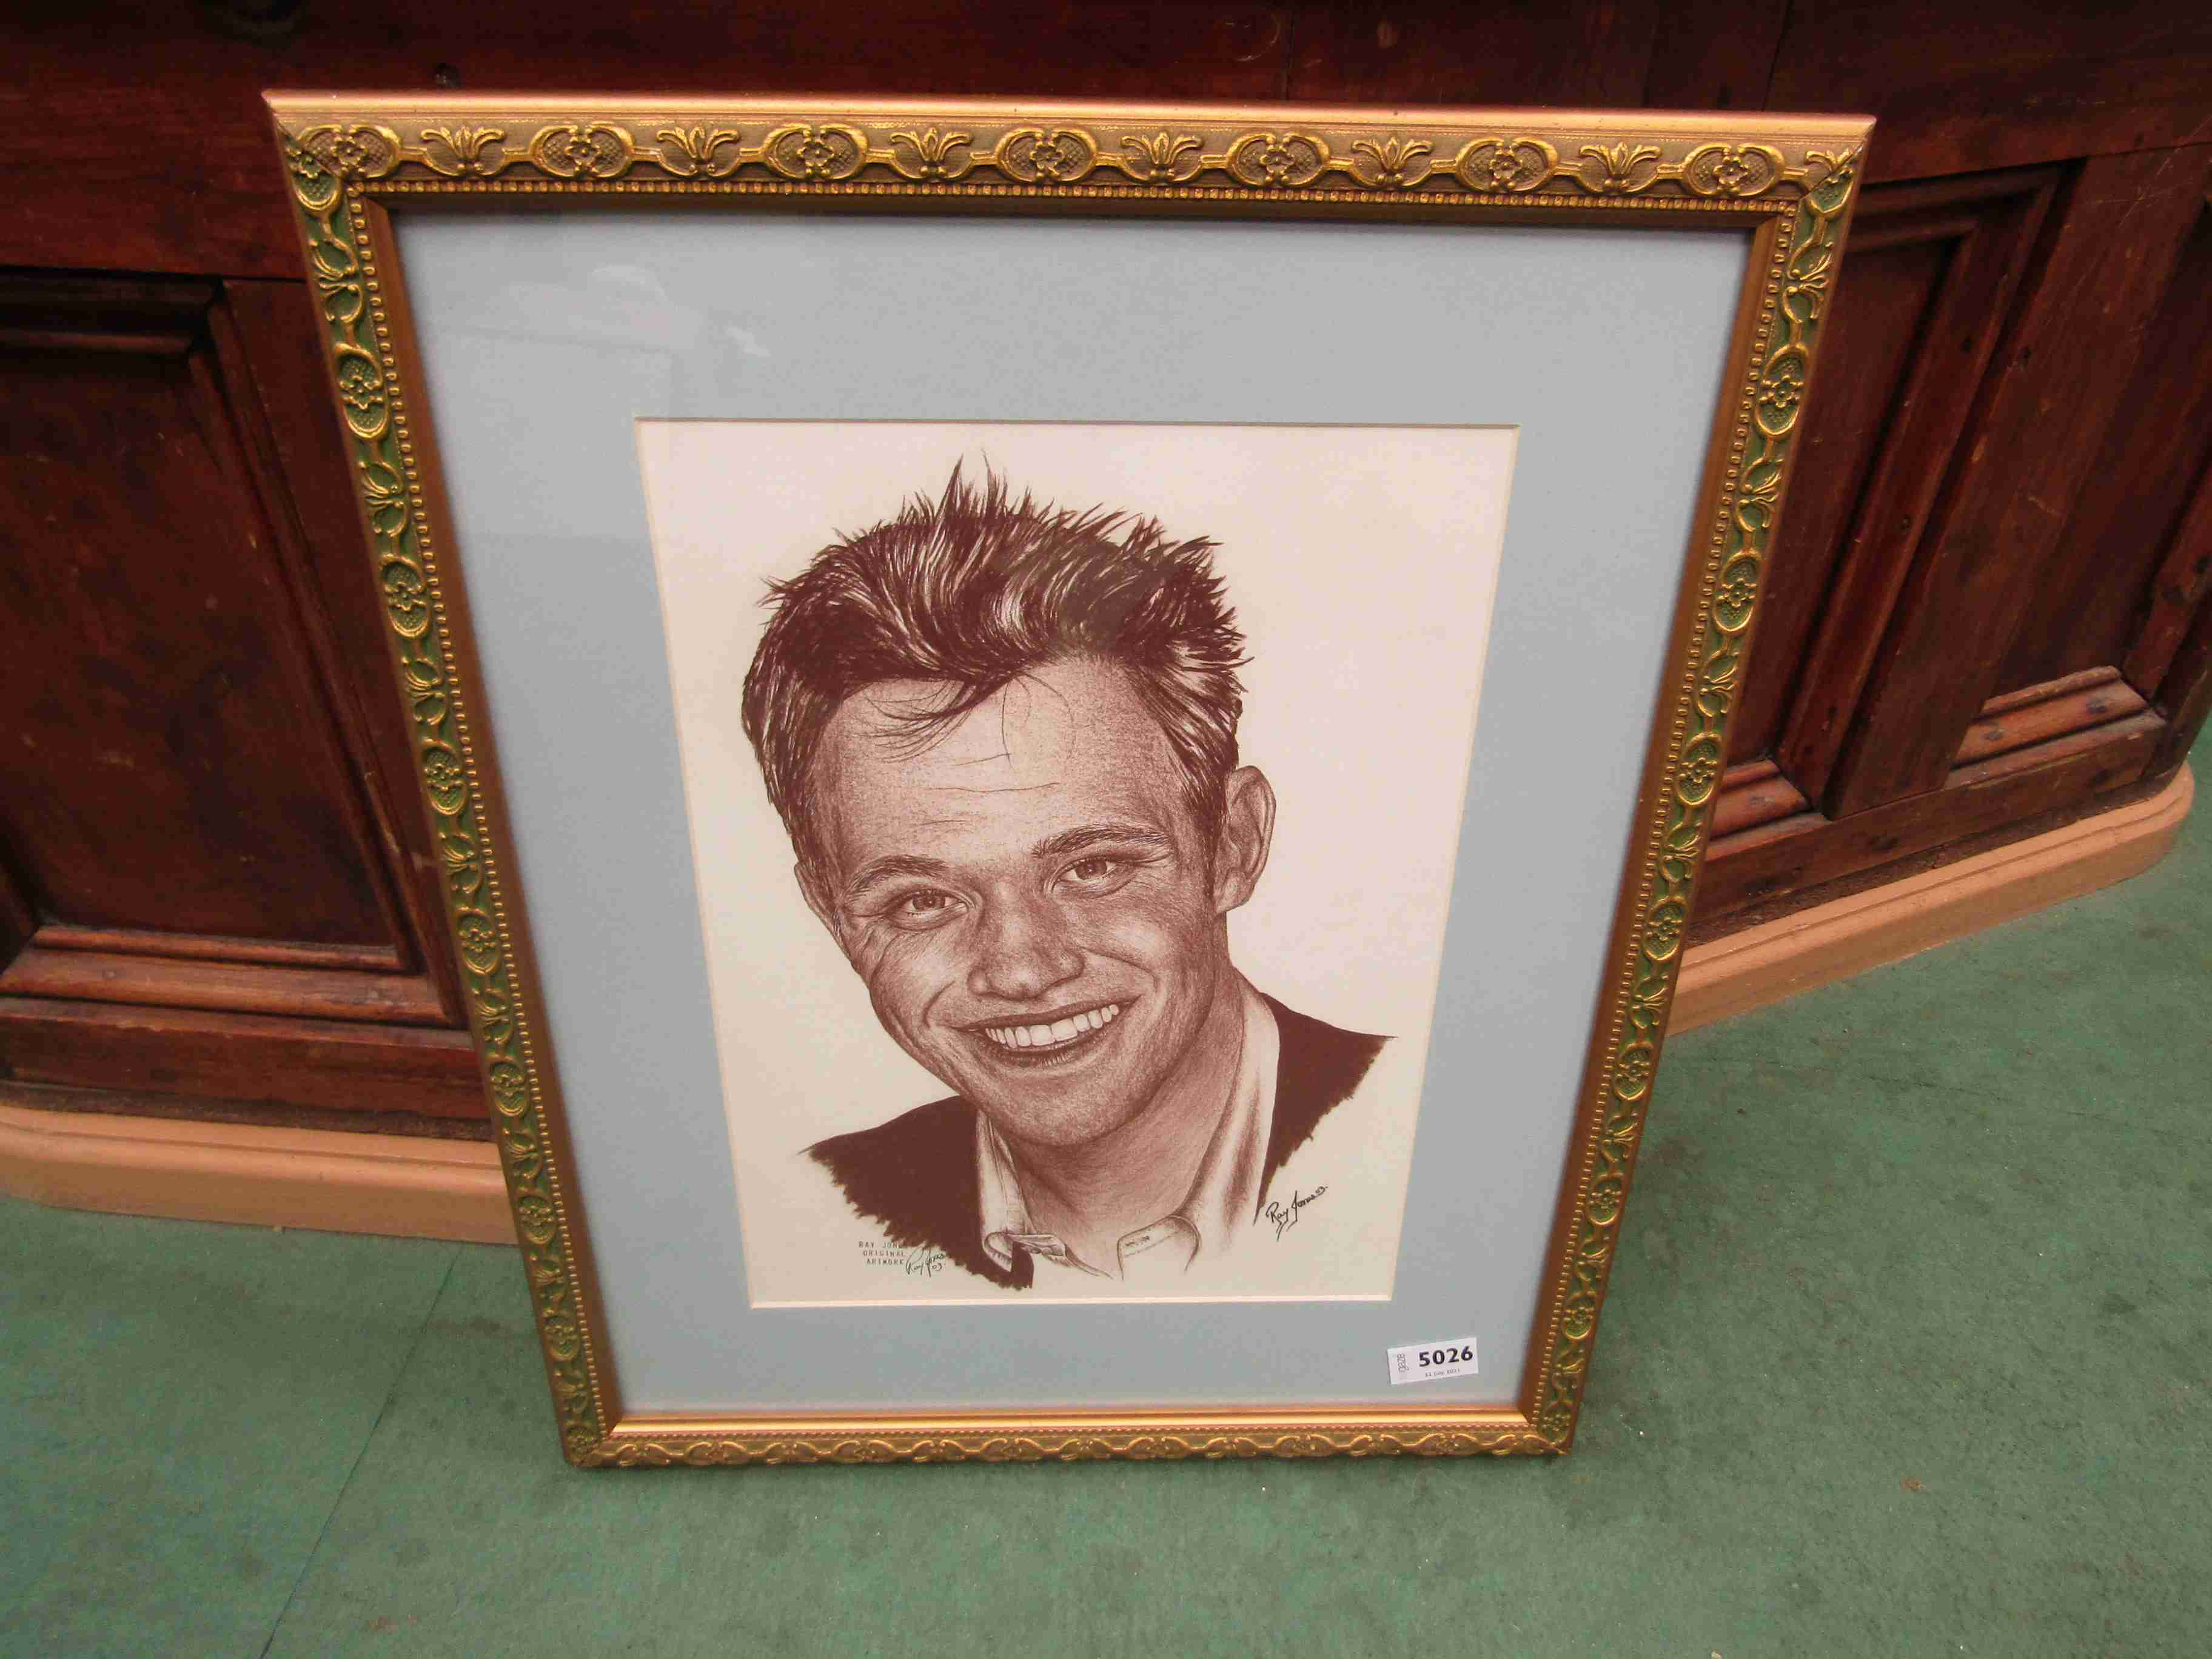 RAY JONES: A framed and glazed pastel portrait of Will Young, signed by the artist